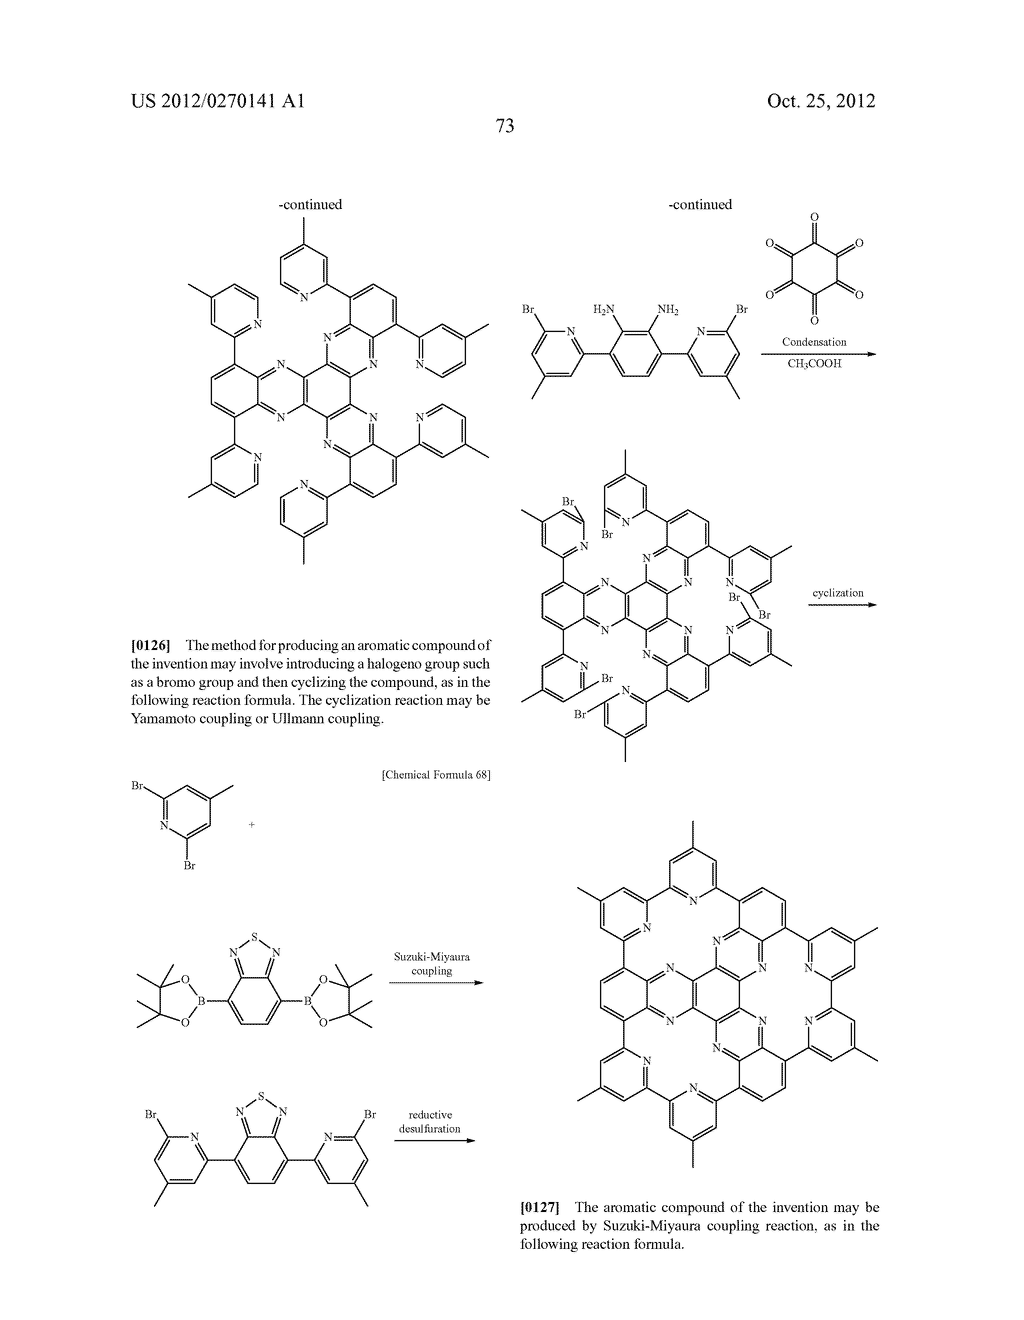 NITROGEN-CONTAINING AROMATIC COMPOUNDS AND METAL COMPLEXES - diagram, schematic, and image 74